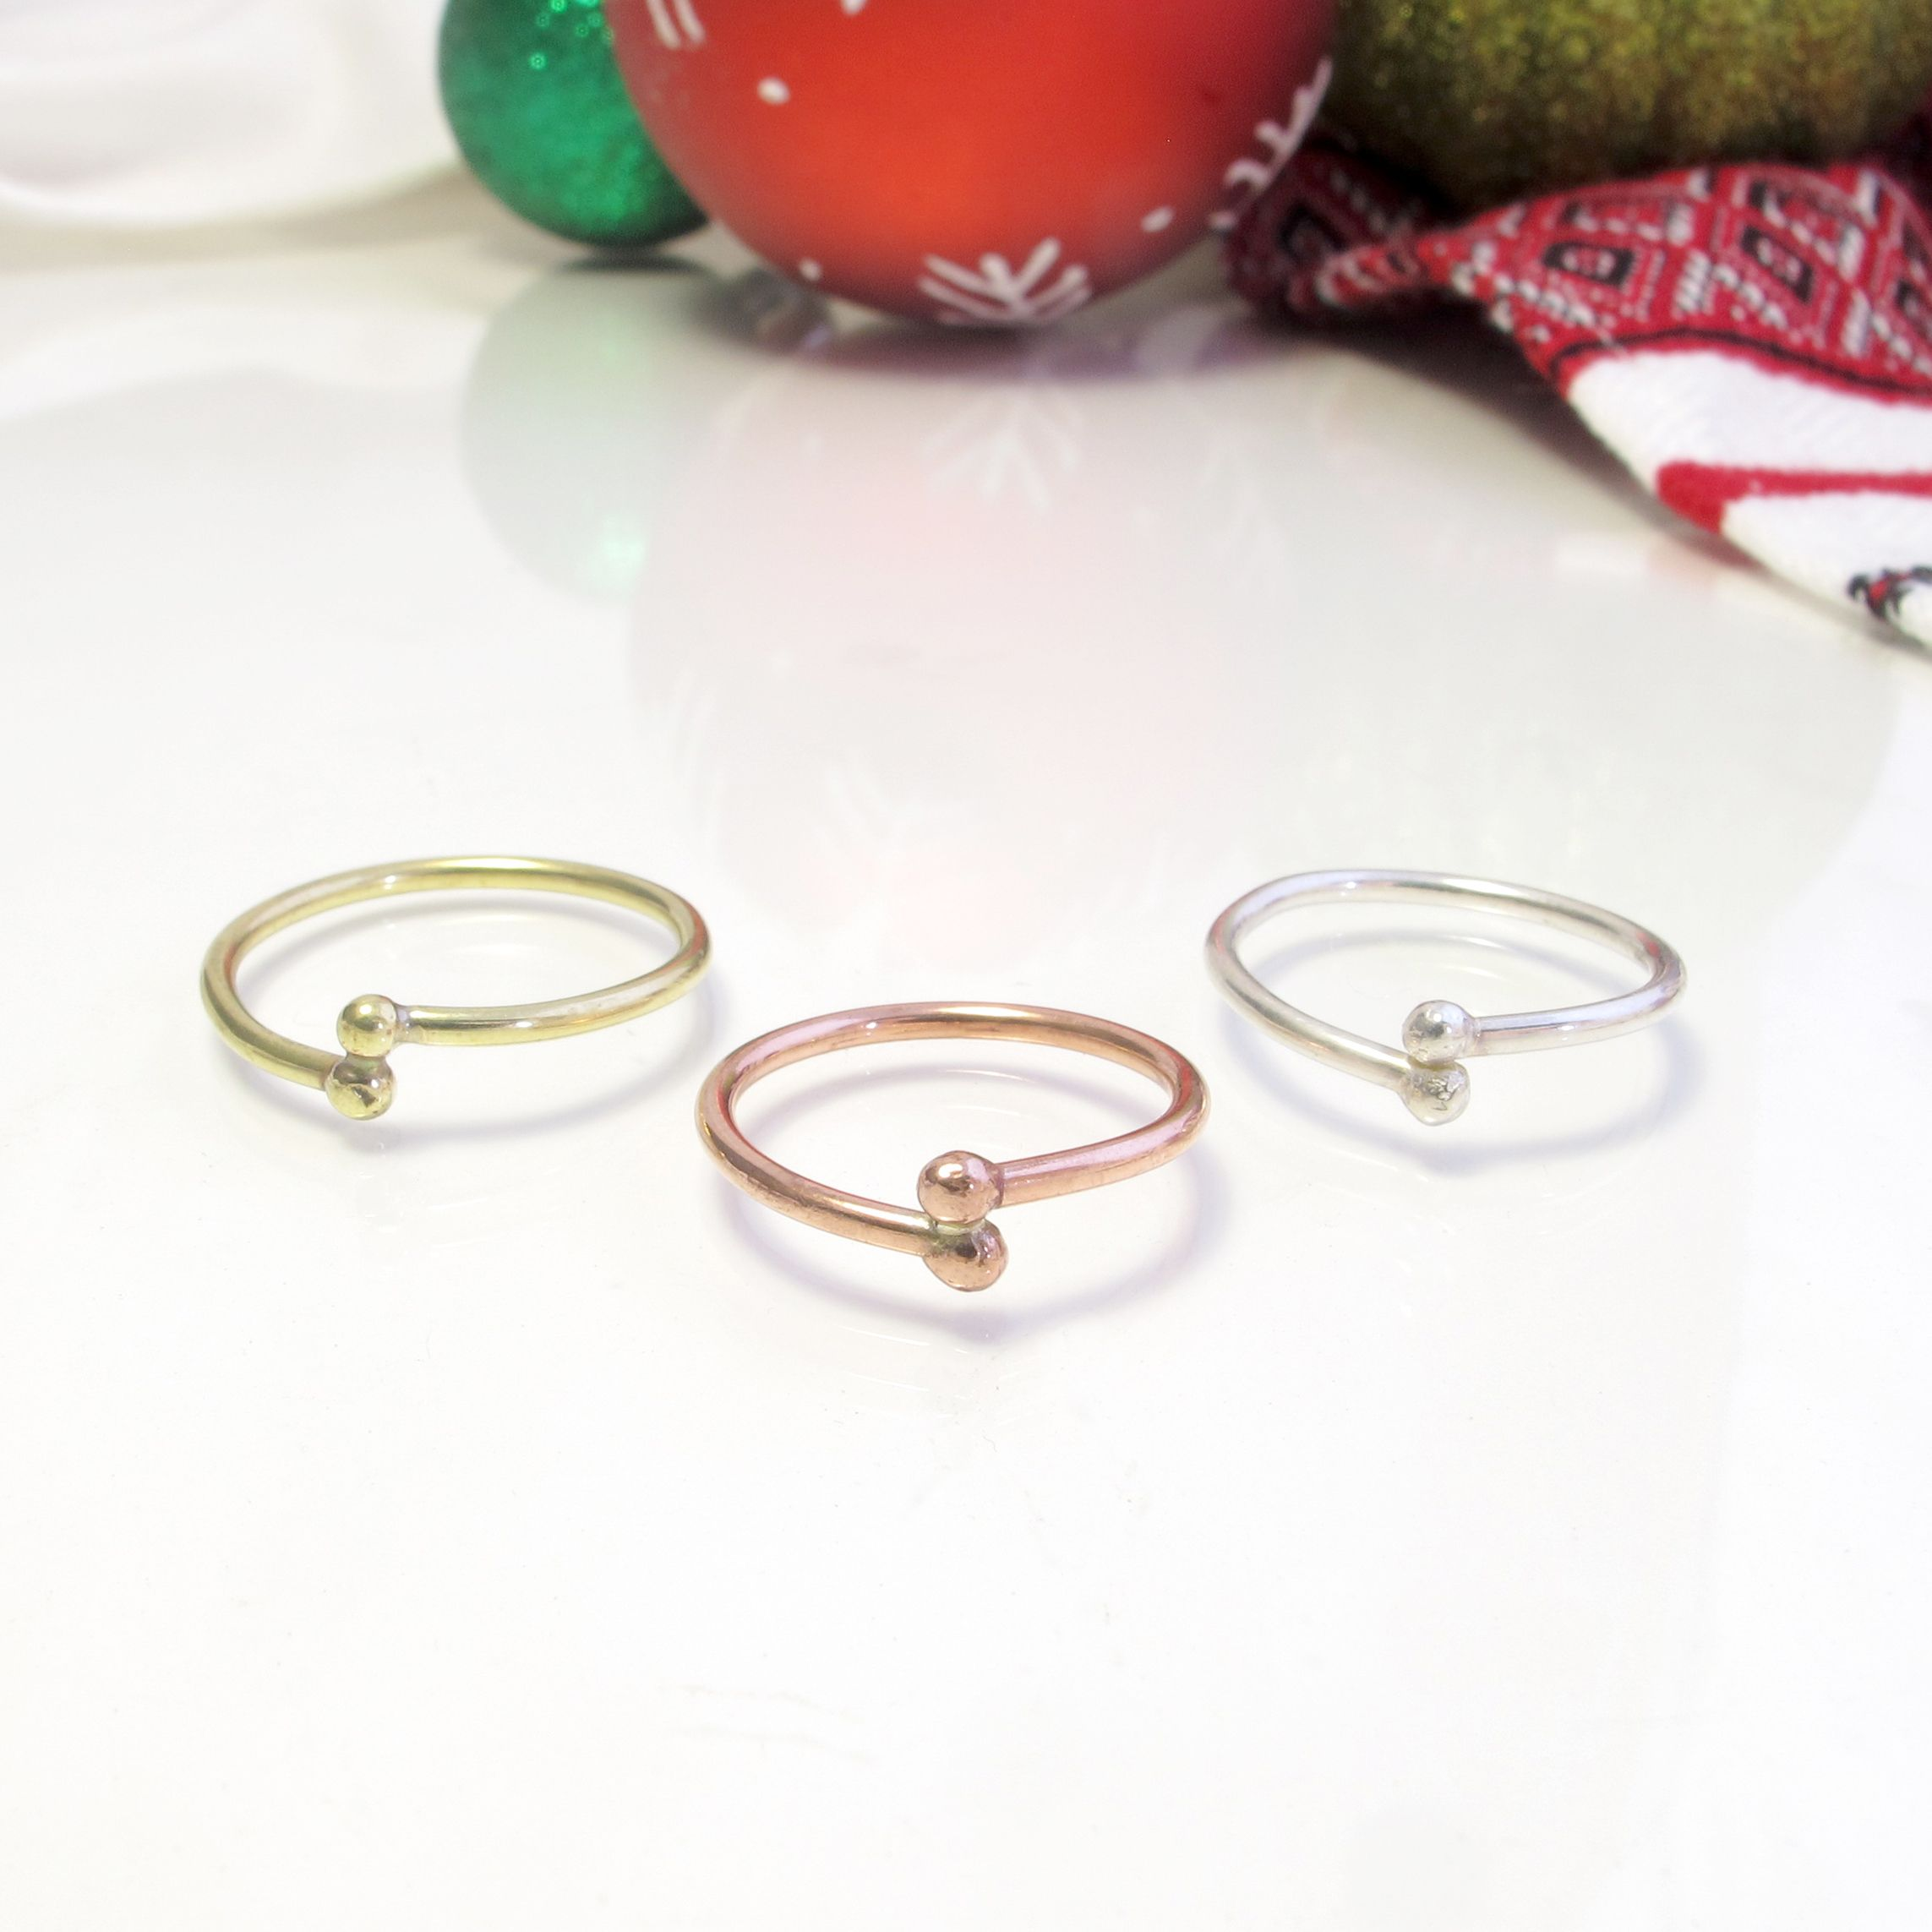 Christmas is here, bring good cheer! 🌟 Sweet little stacker rings ~ perfect solo, or great layered with other rings. #ootd #ootn #layeredrings #stackerrings #stackingrings #simplerings #cuterings #littlerings #tinyrings #petiterings #plainrings #baublerings #layerings #mixnmatchrings #ringsringsrings #ringintheholidays #christmasishere #stockingstuffers #littletreasures #cutejewelry #cutejewellery #ballrings #wholesalehandmaderings #boutiqueshopping